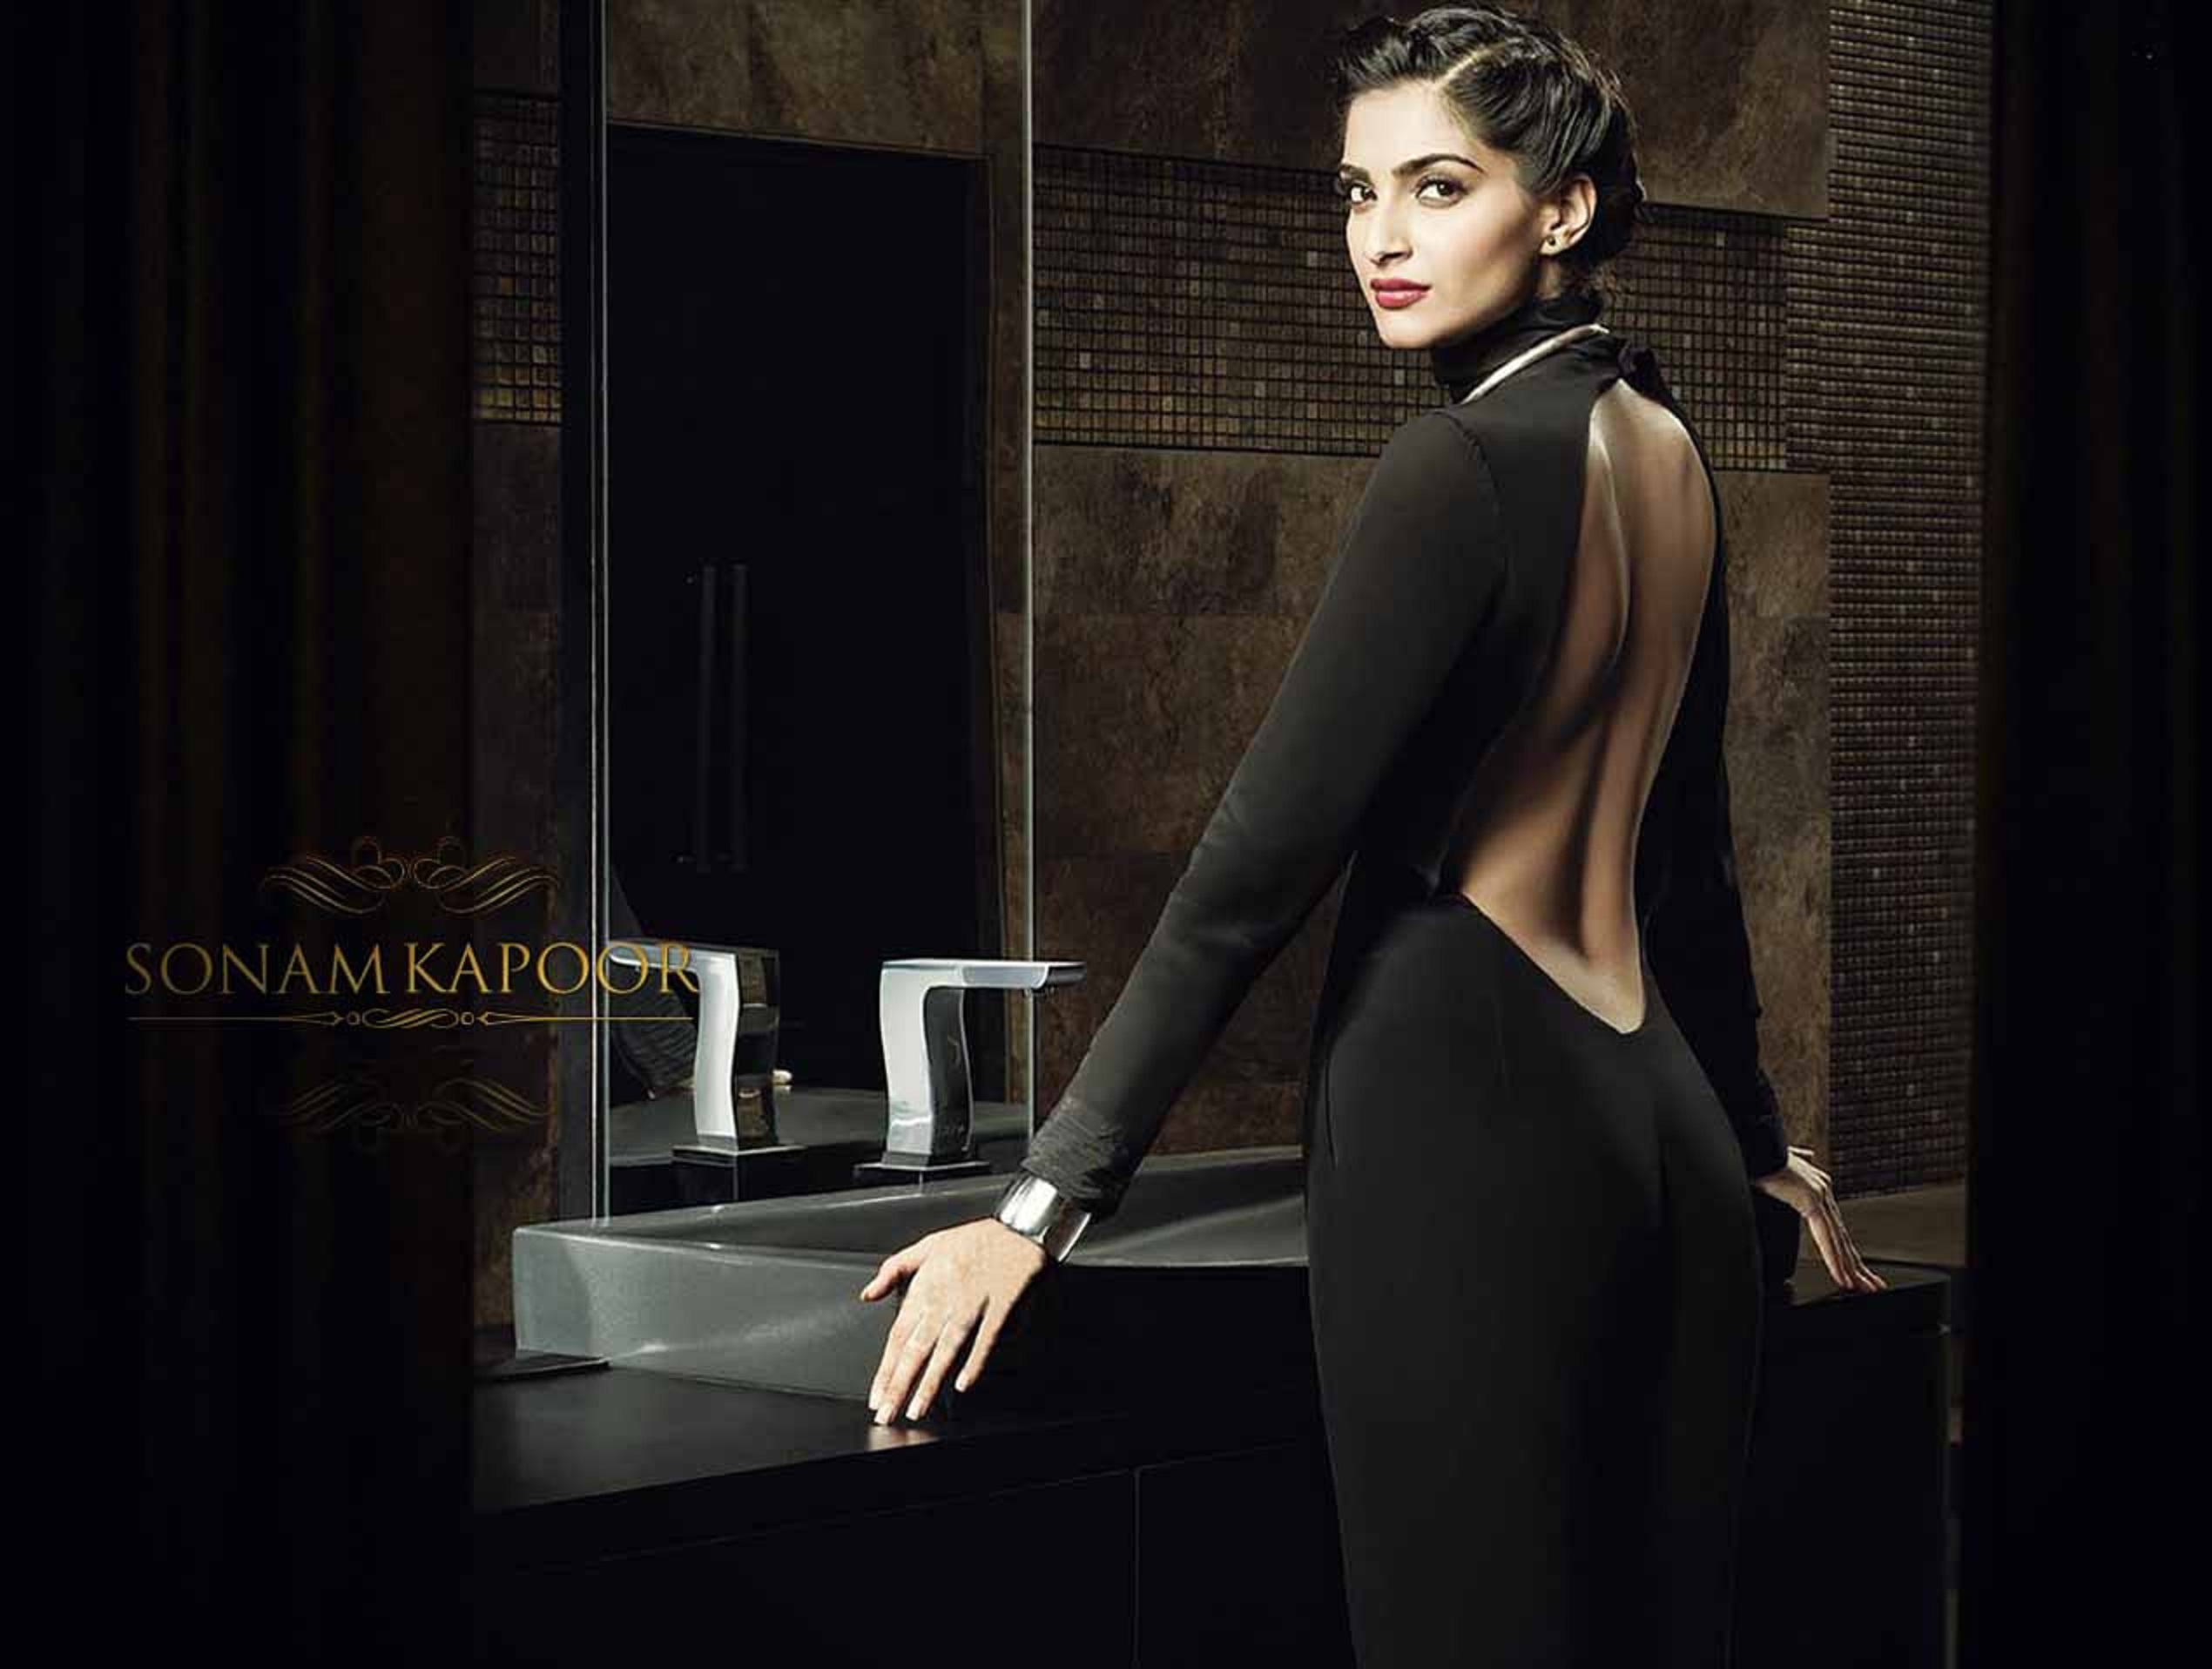 Sonam-Kapoor-Backless-Images.jpg